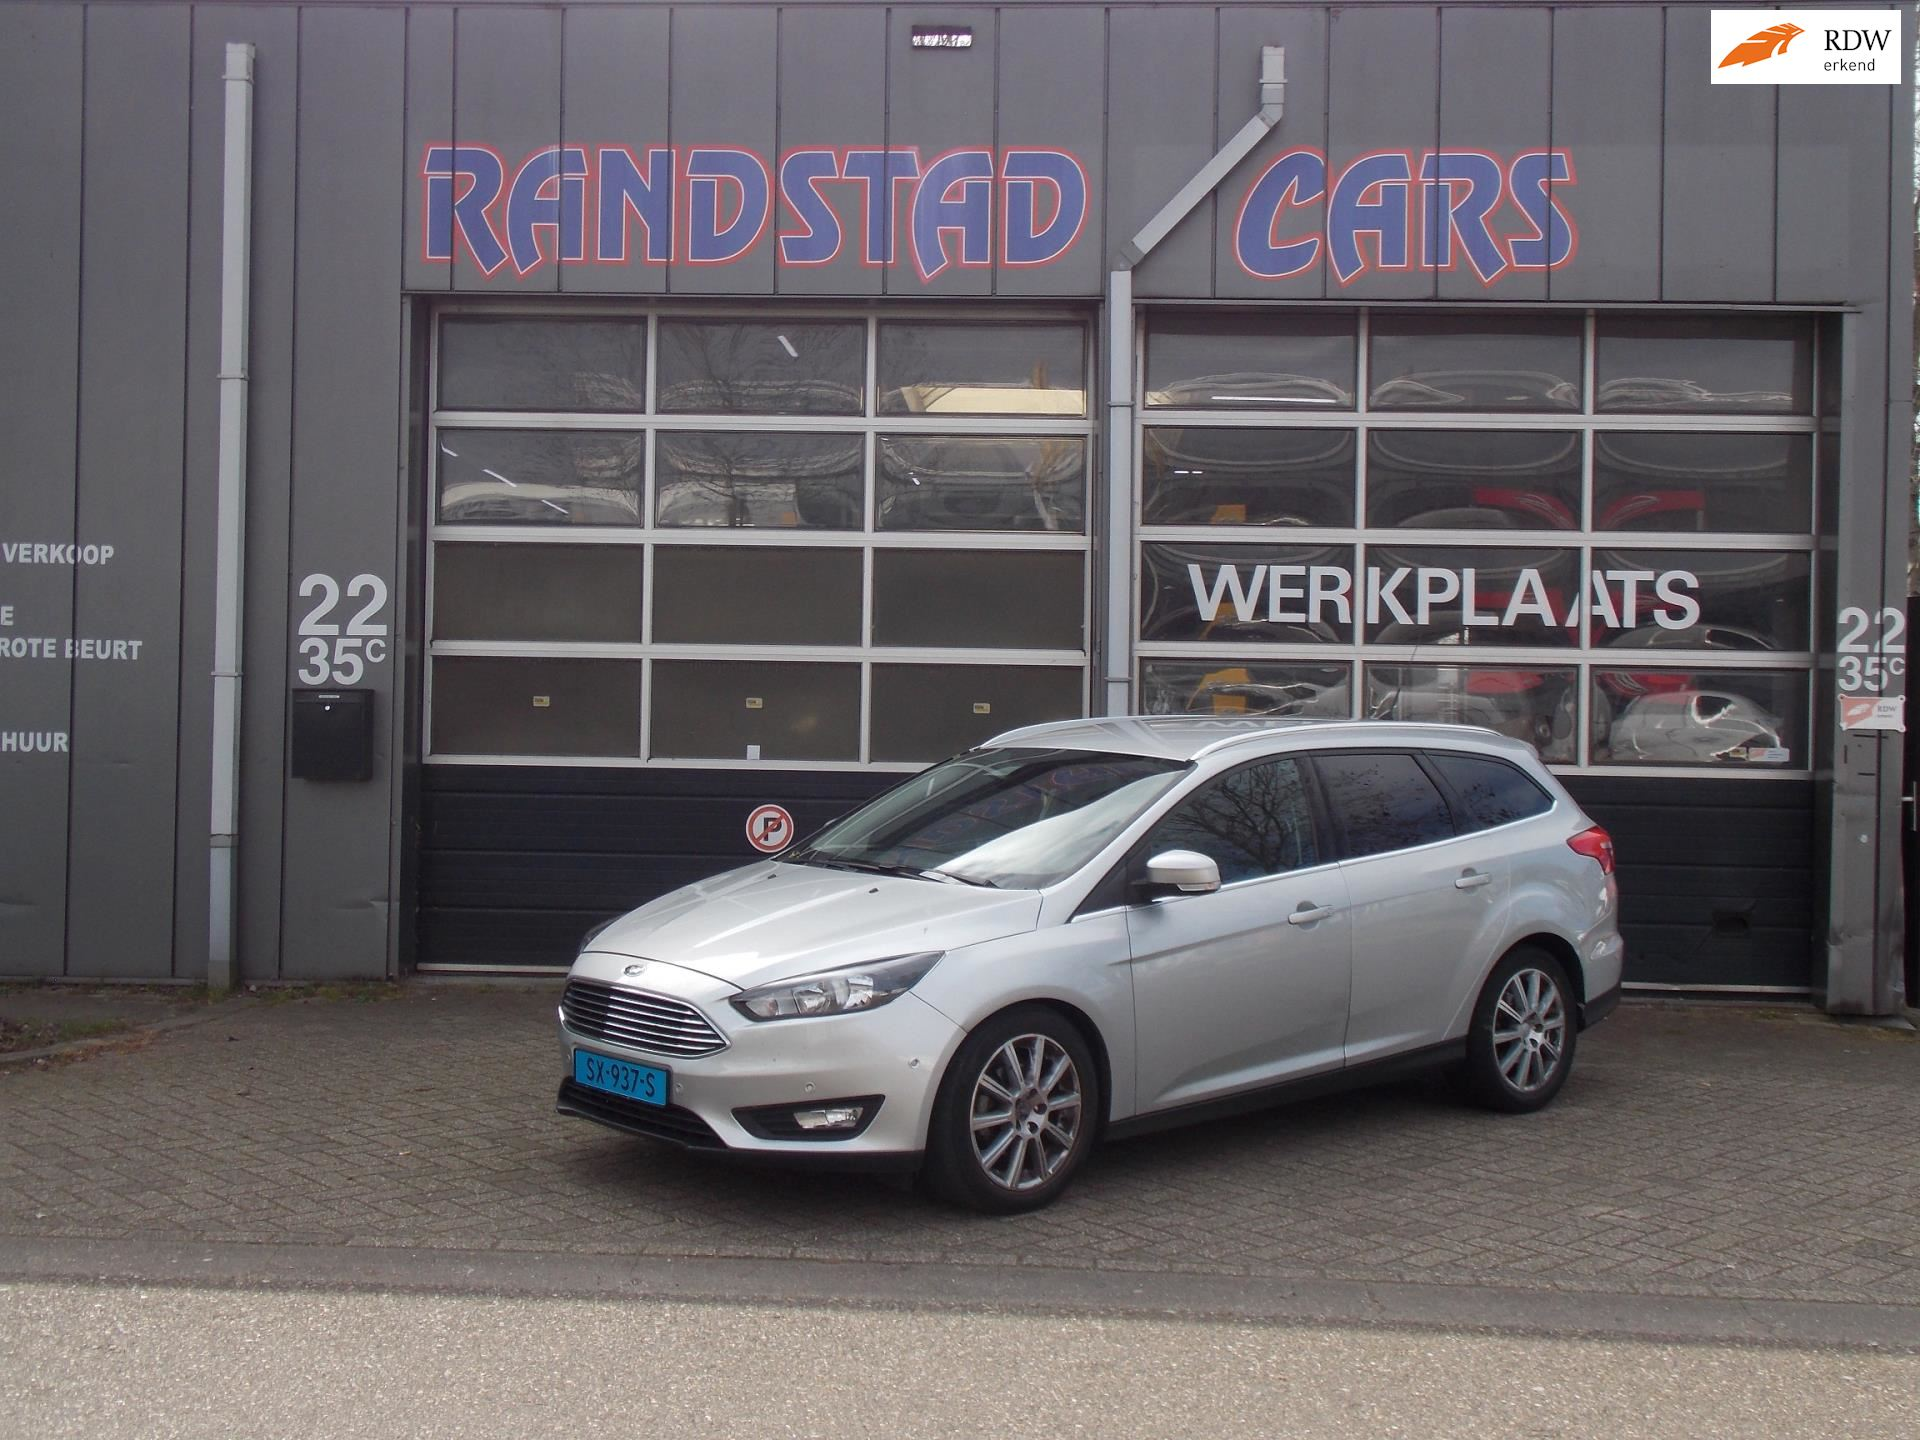 Ford Focus Wagon occasion - Randstad Cars